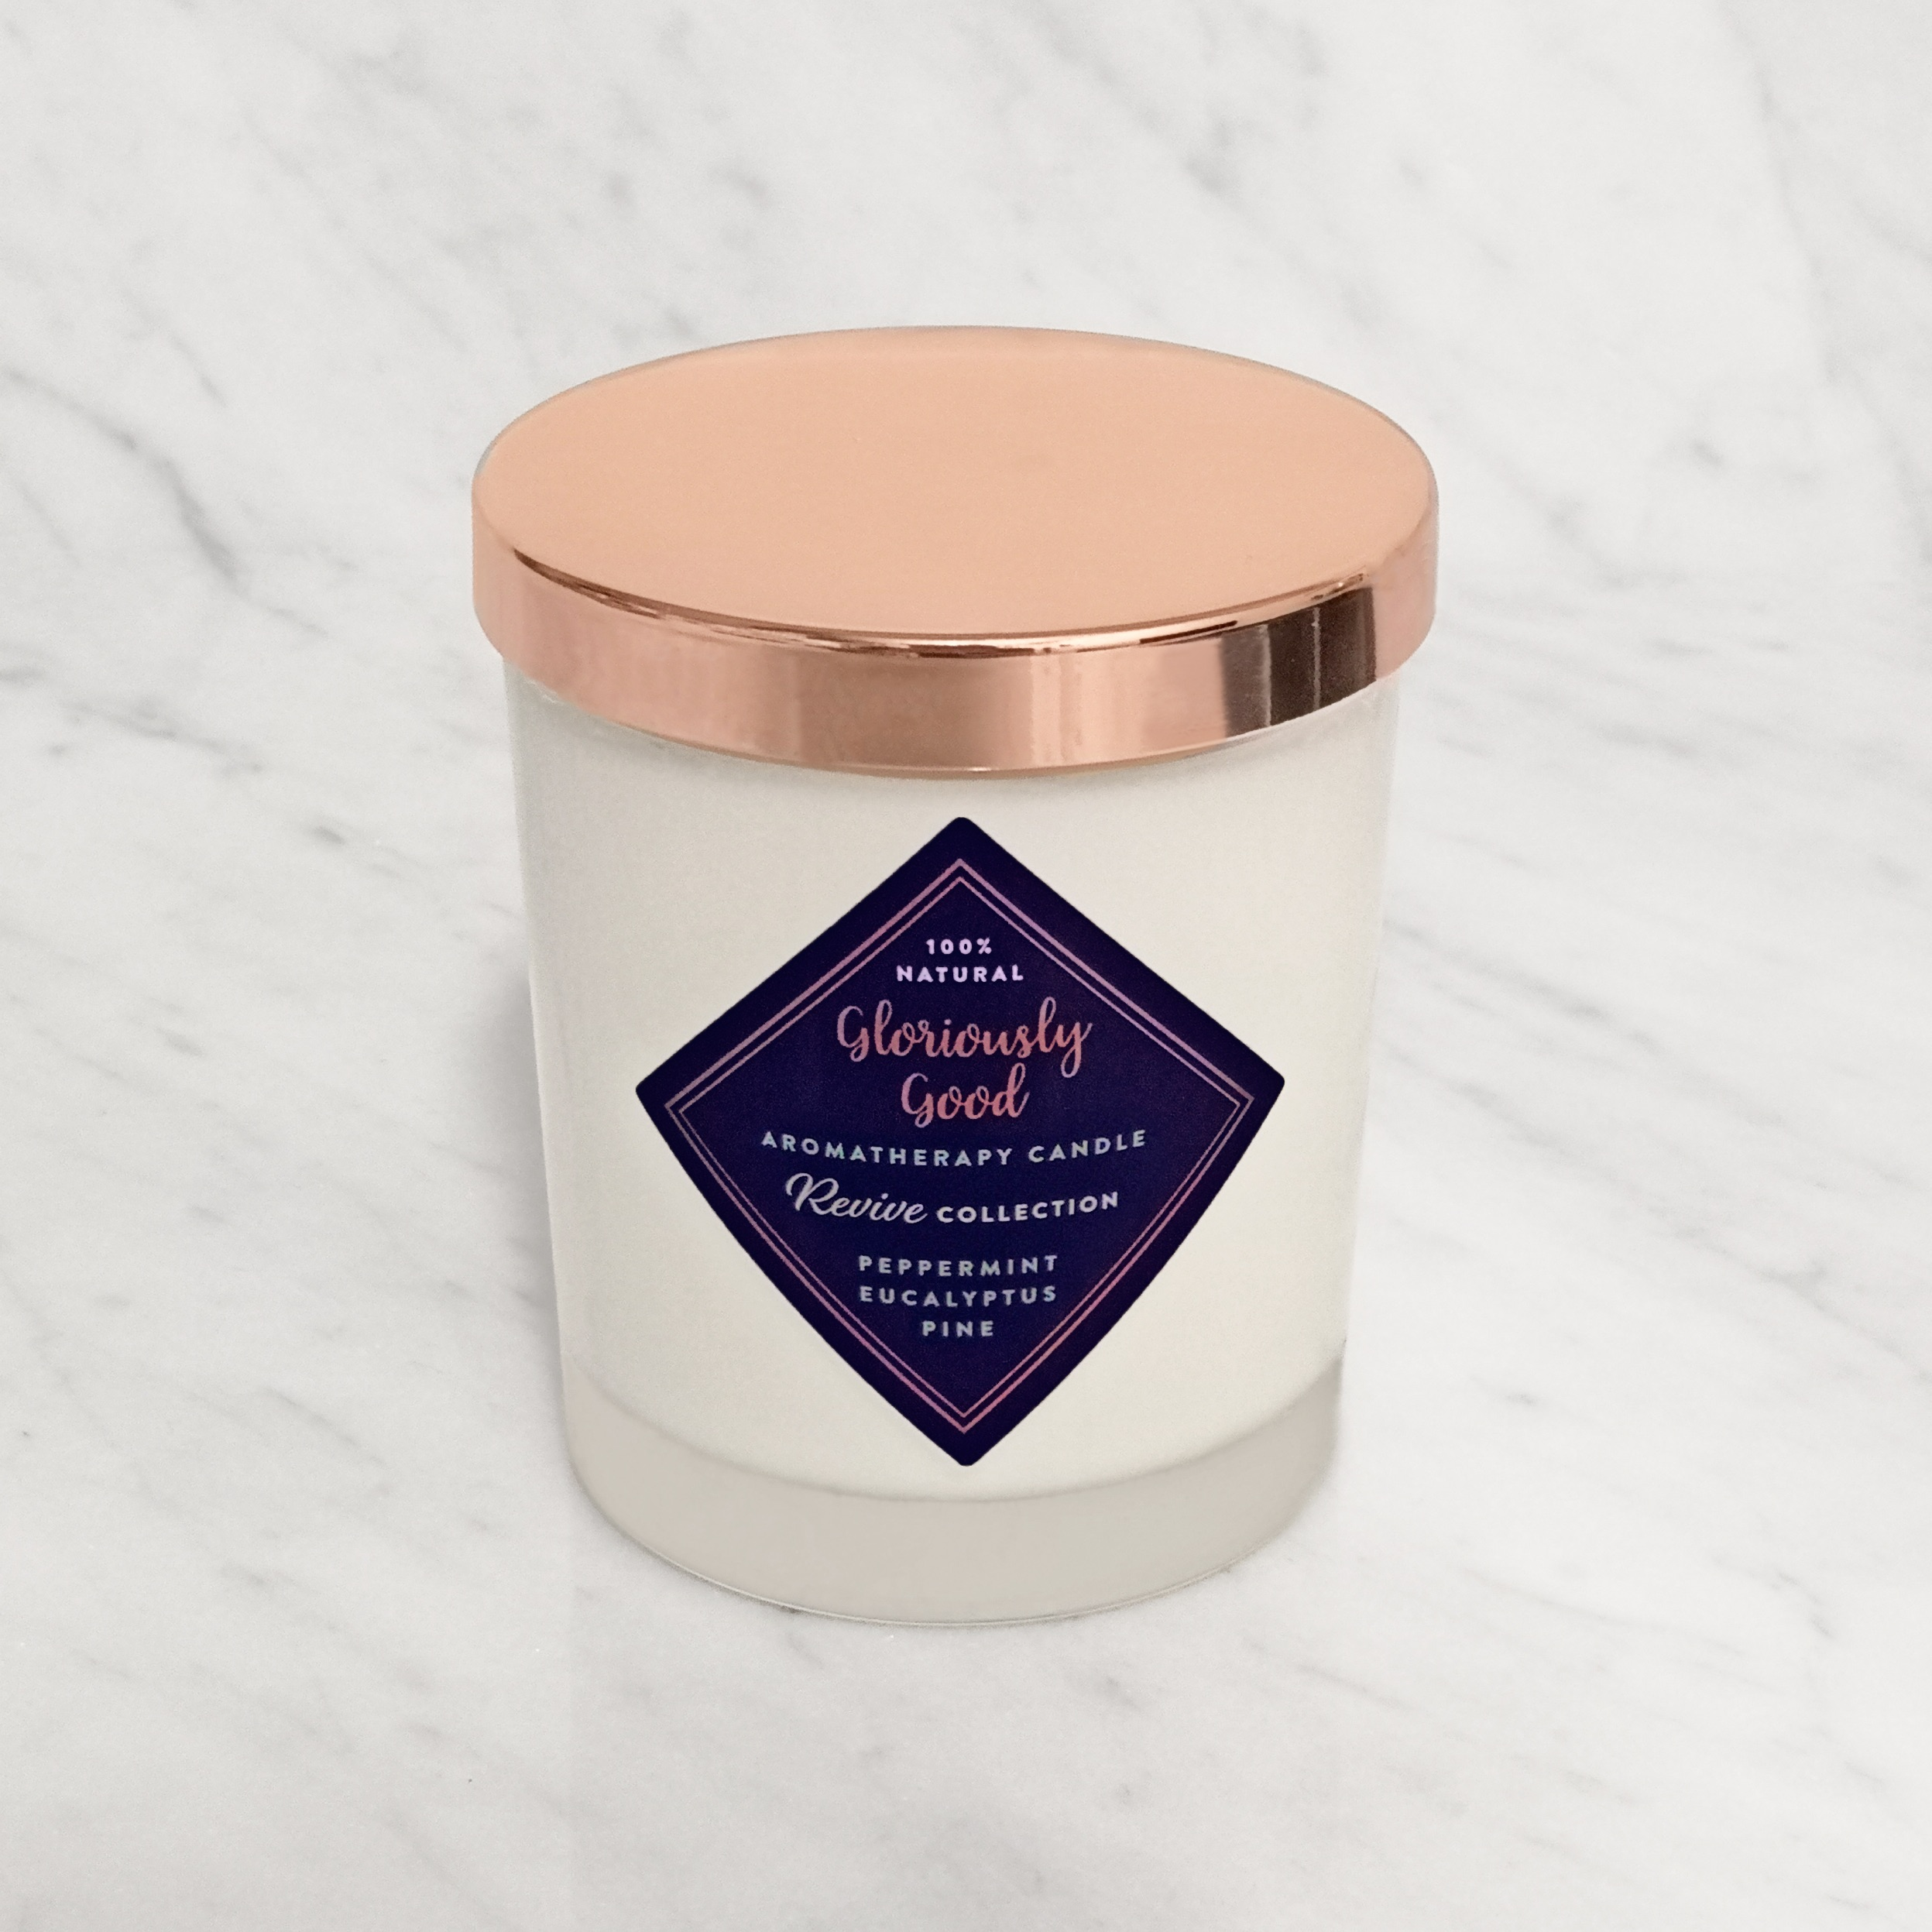 Natural Peppermint, Eucalyptus & Pine Essential Oil Aromatherapy Candle